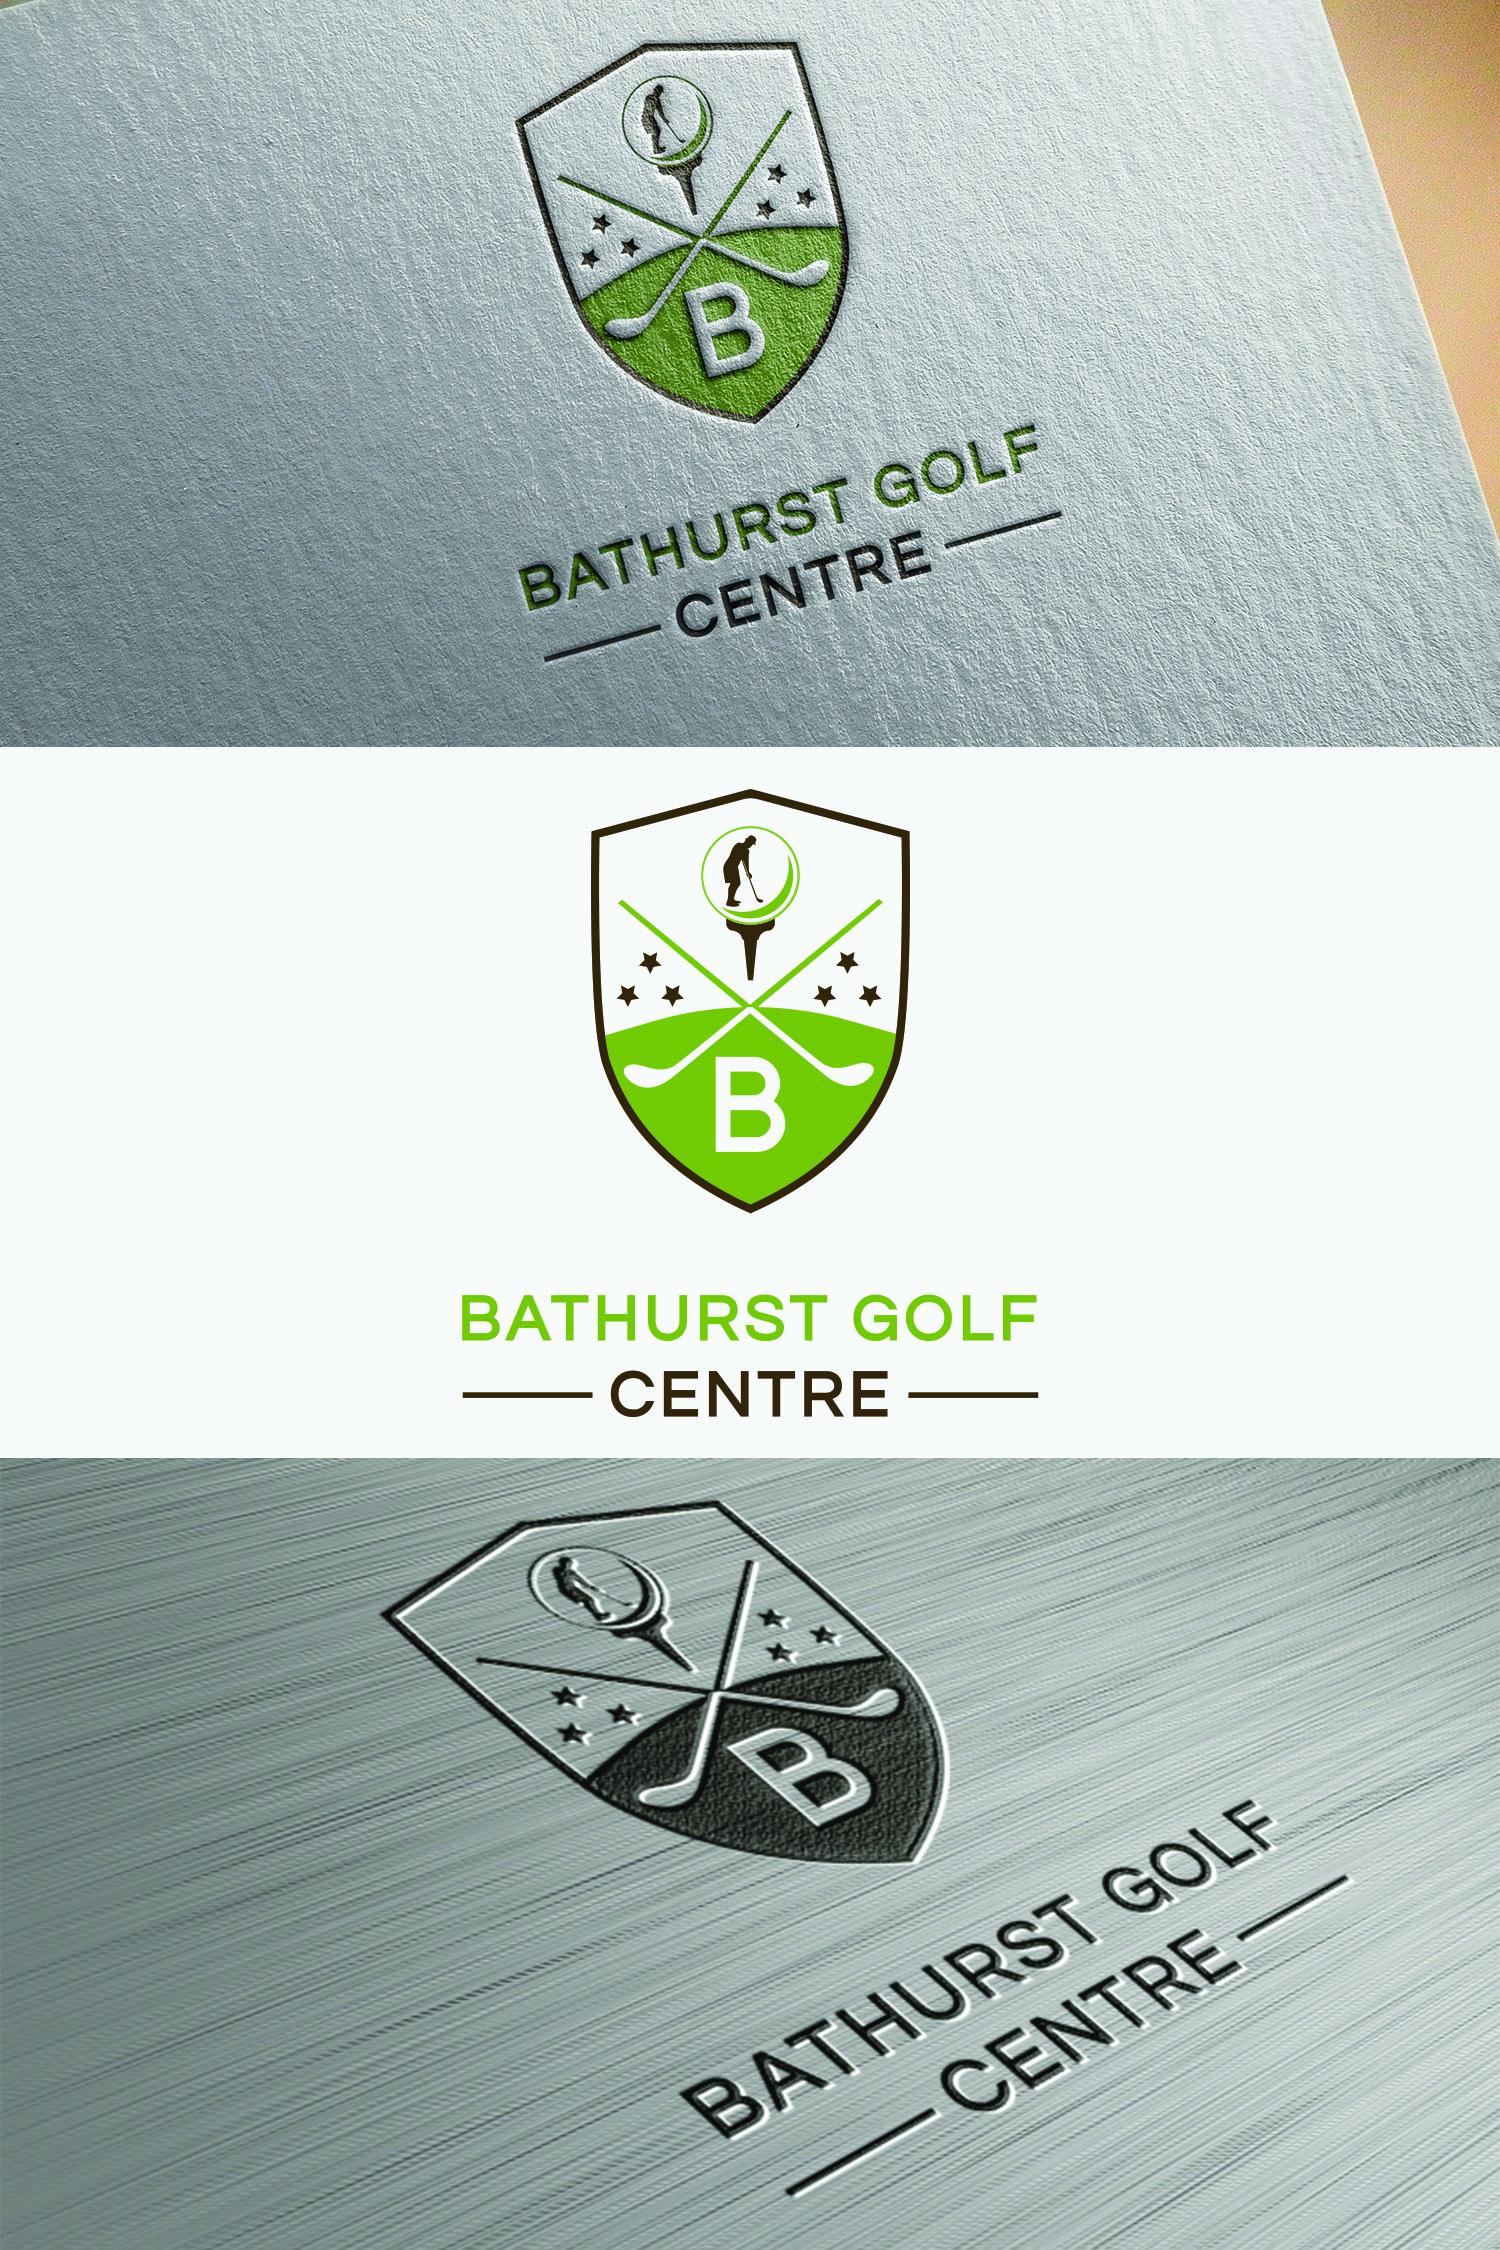 Logo Design by Umair ahmed Iqbal - Entry No. 43 in the Logo Design Contest Inspiring Logo Design for Bathurst Golf Centre.